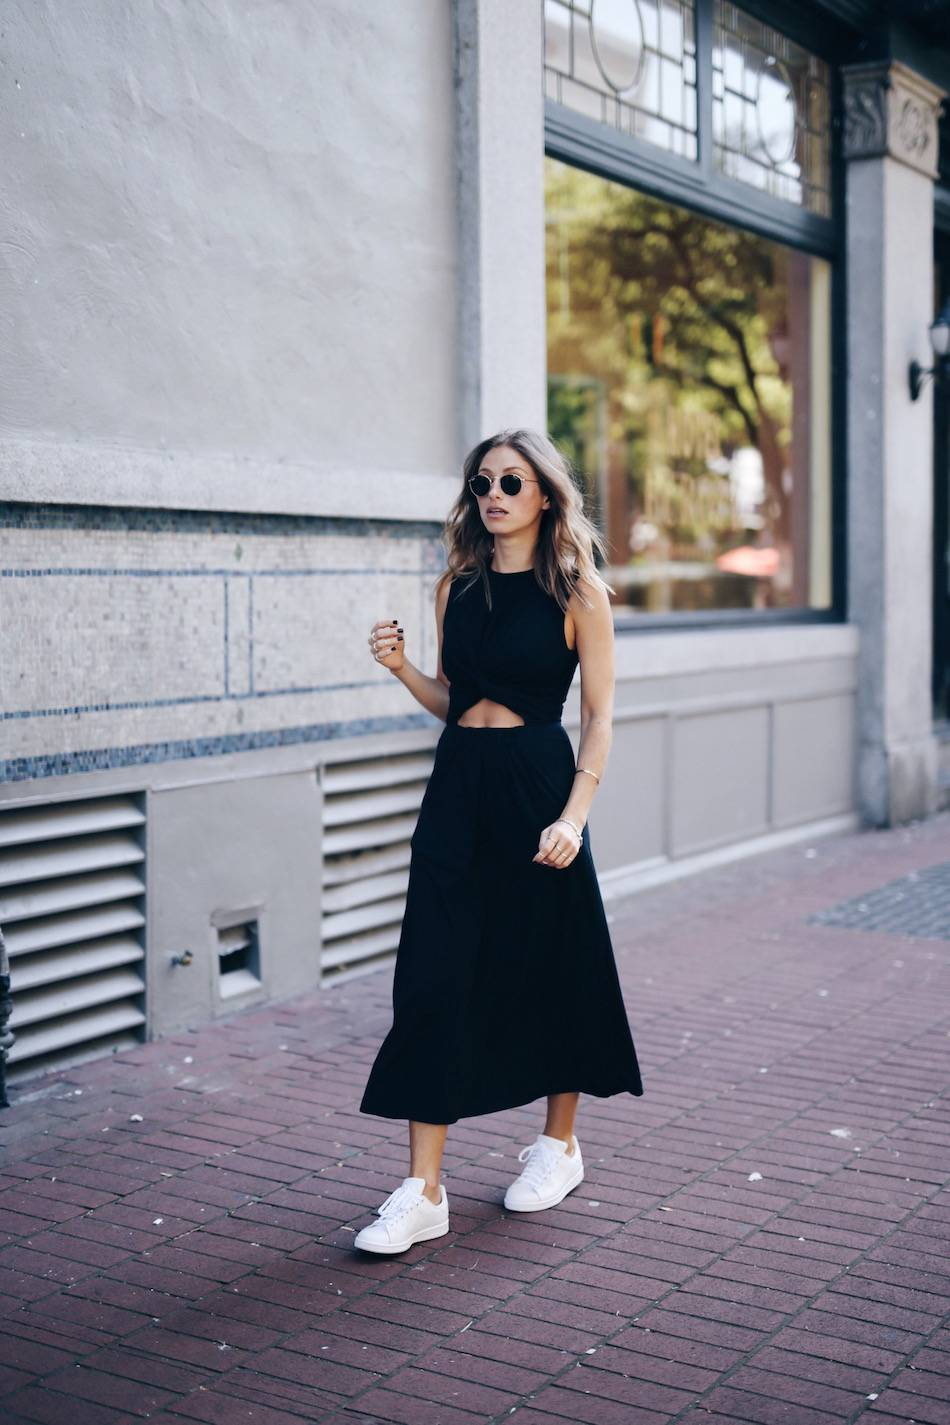 Pairing sneakers with a dress or two piece is a simple but effective way to create an urban street chic style which is ideal for everyday wear. Throw on a pair of retro shades to steal Jill Lansky's summer look. Dress: T by Alexander Wang, Sneakers: Adidas Stan Smith.